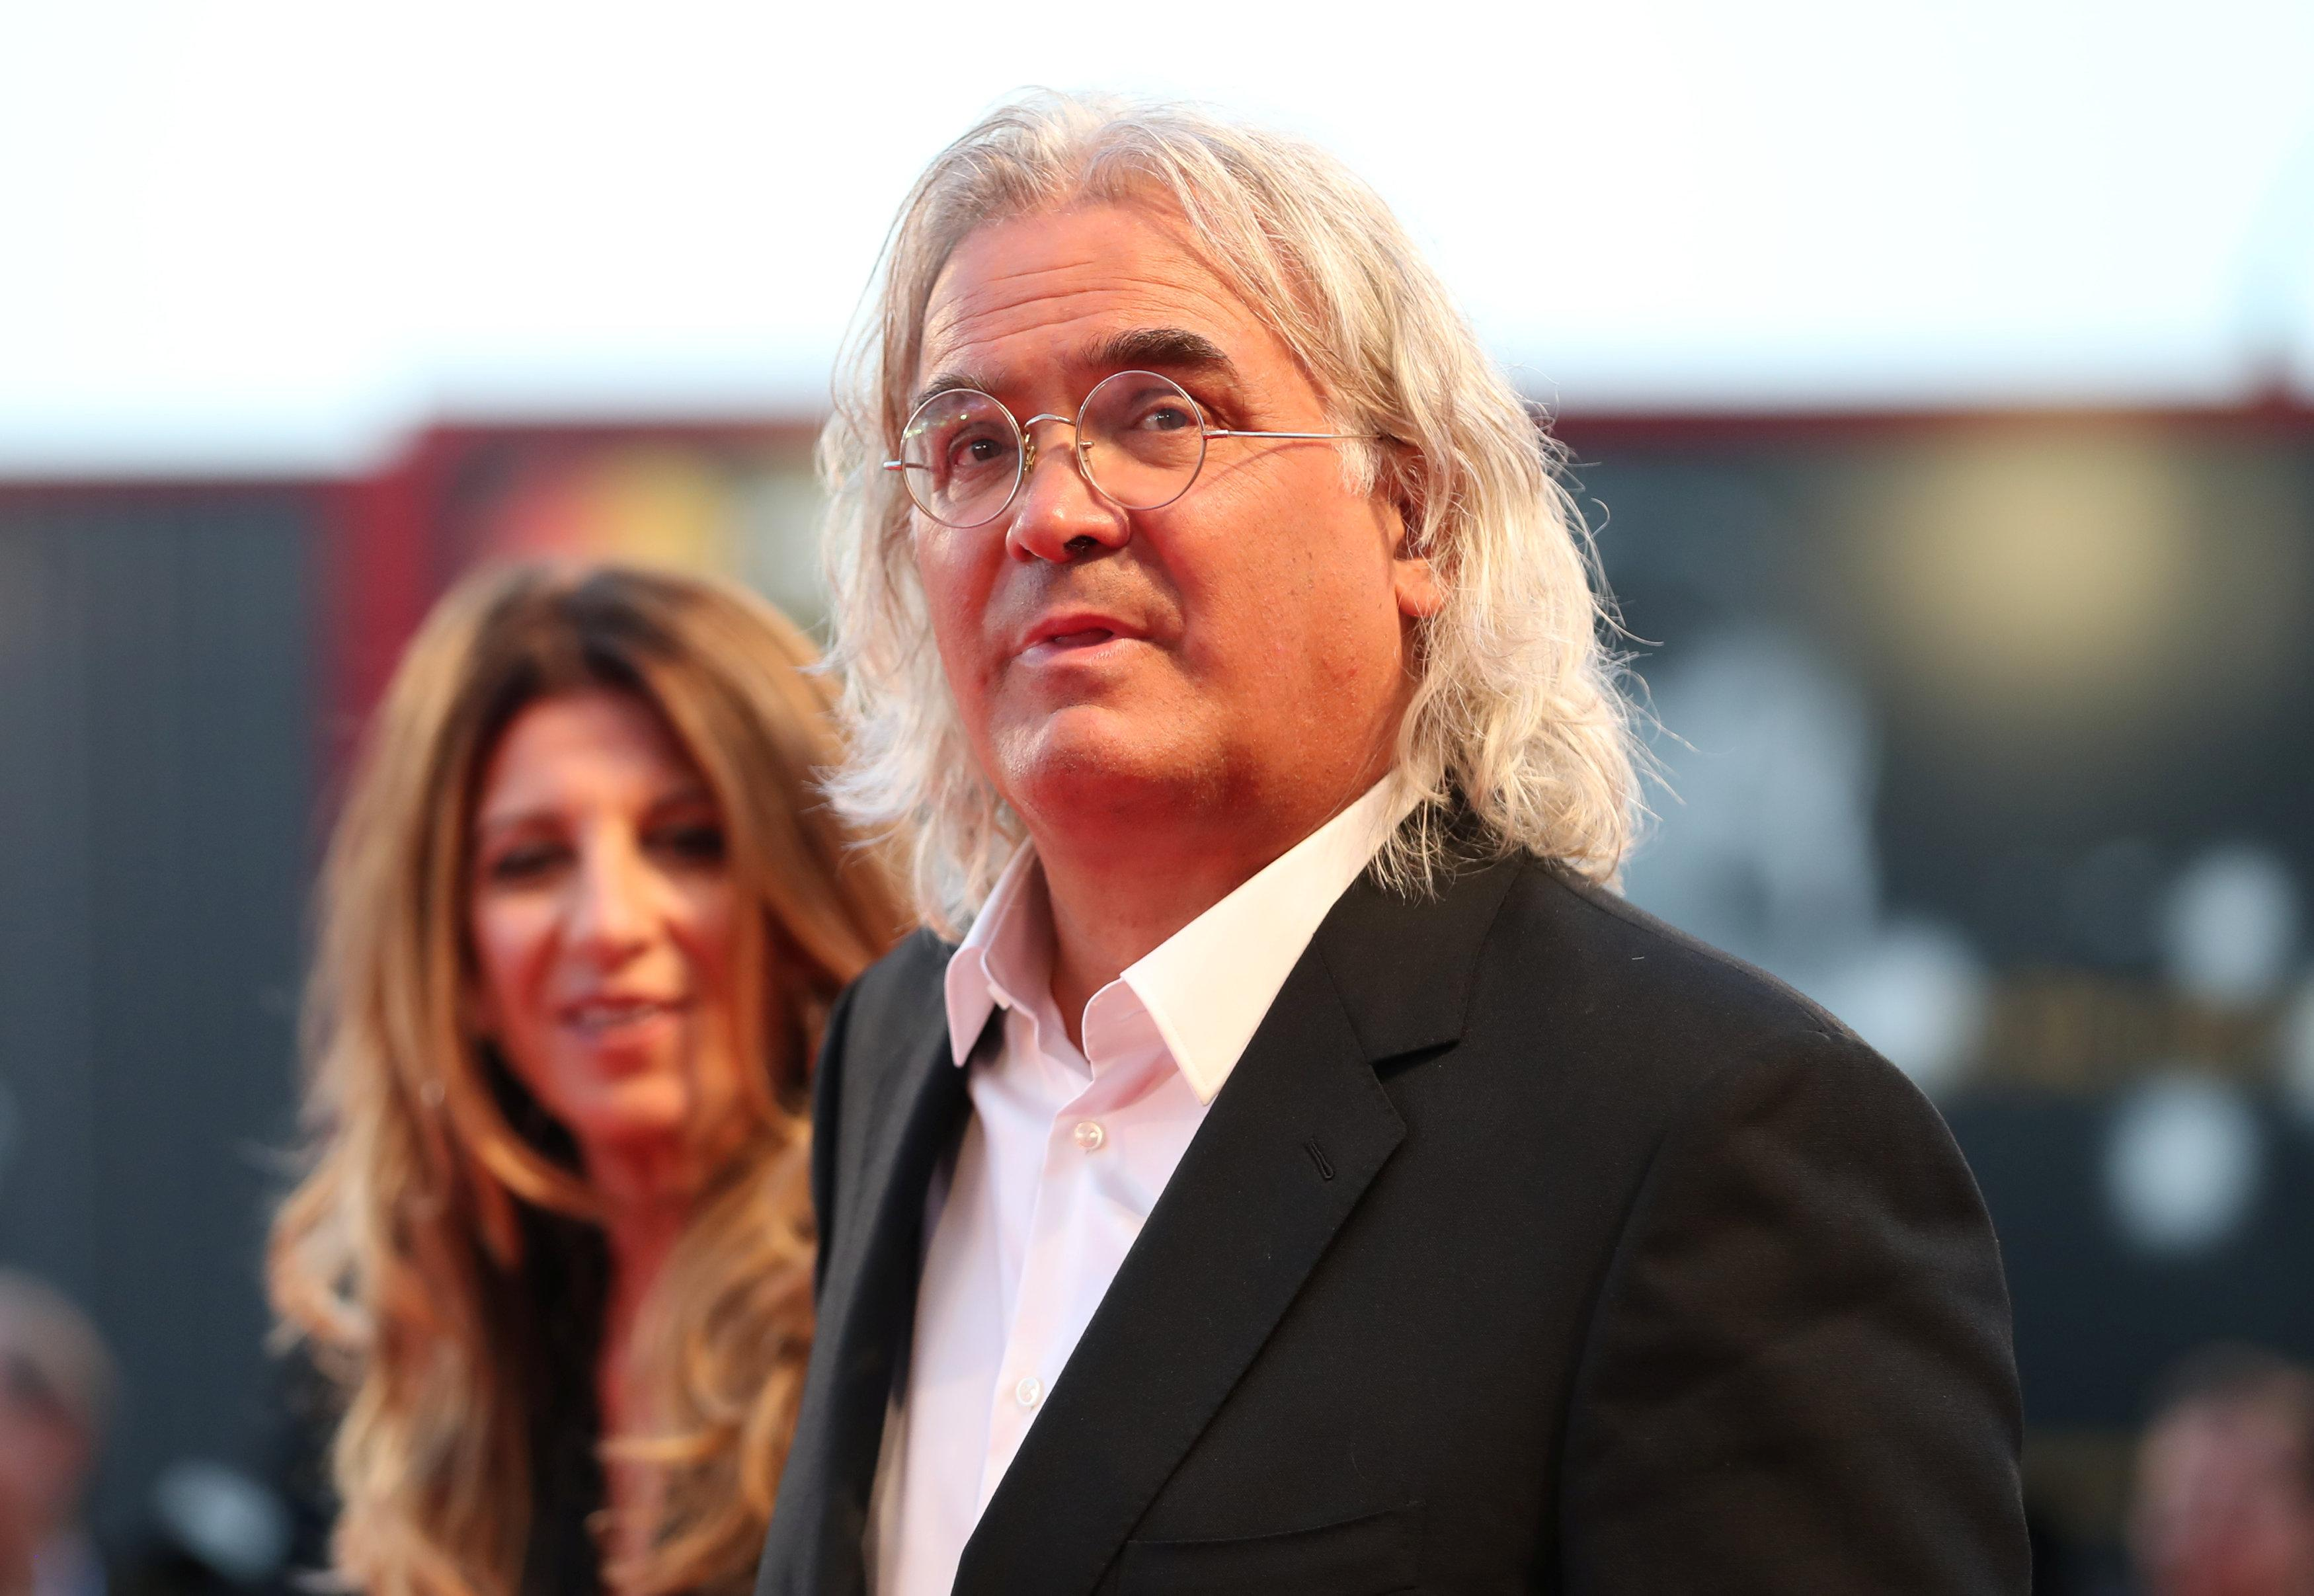 "The 75th Venice International Film Festival - Screening of the film ""22 July"" competing in the Venezia 75 section - Red Carpet Arrivals - Venice, Italy, September 5, 2018 - Director Paul Greengrass. Tony Gentile"